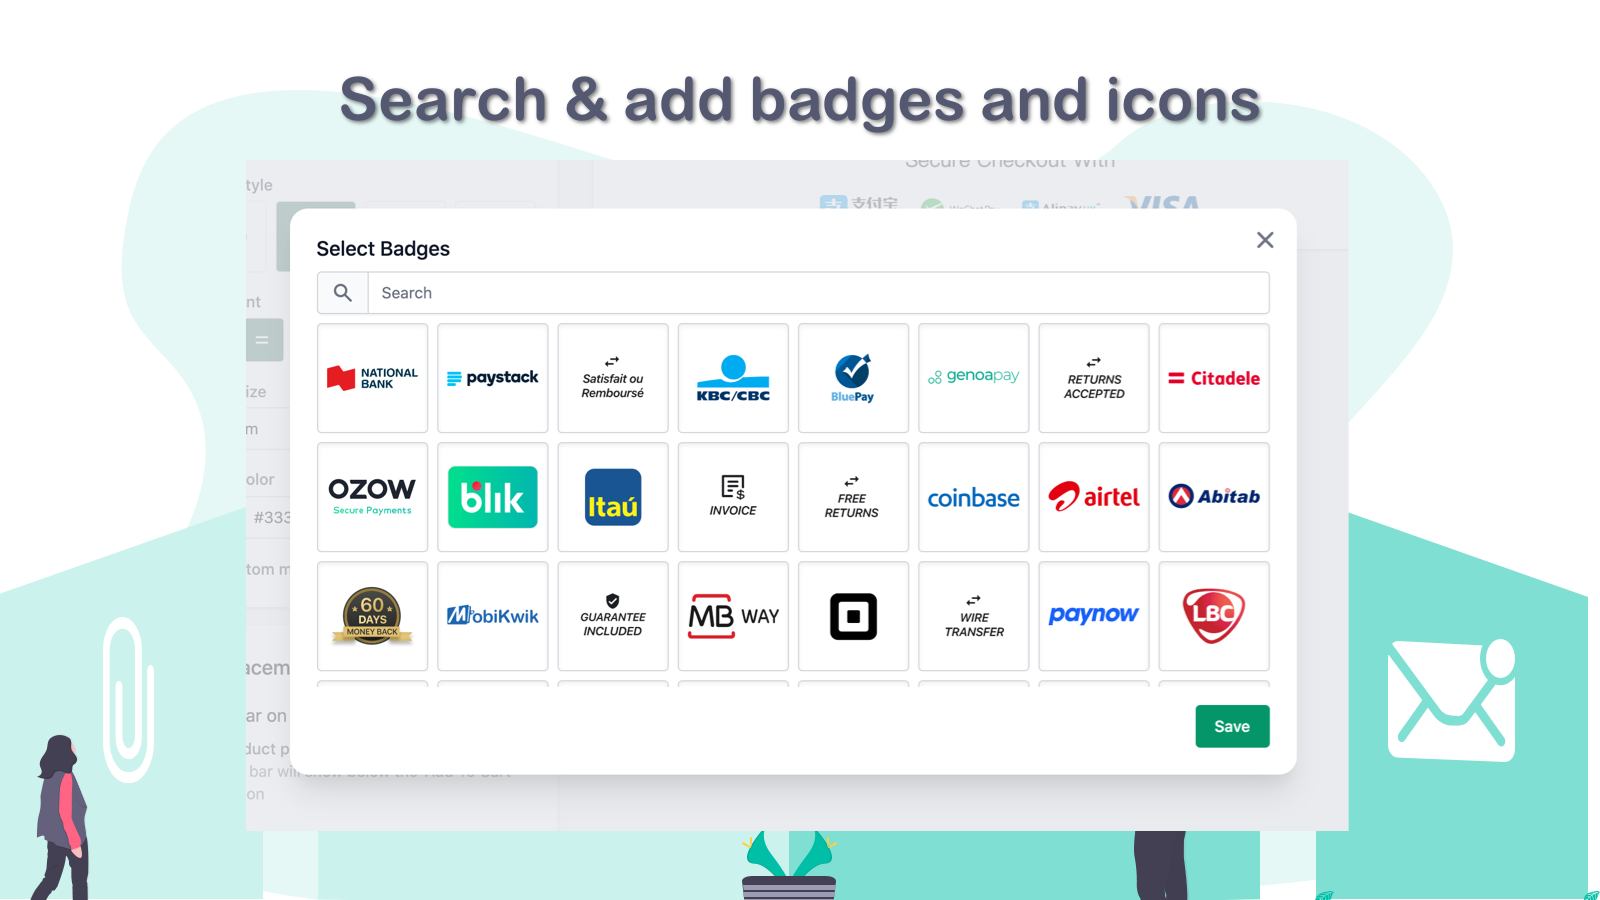 Search & add badges and icons